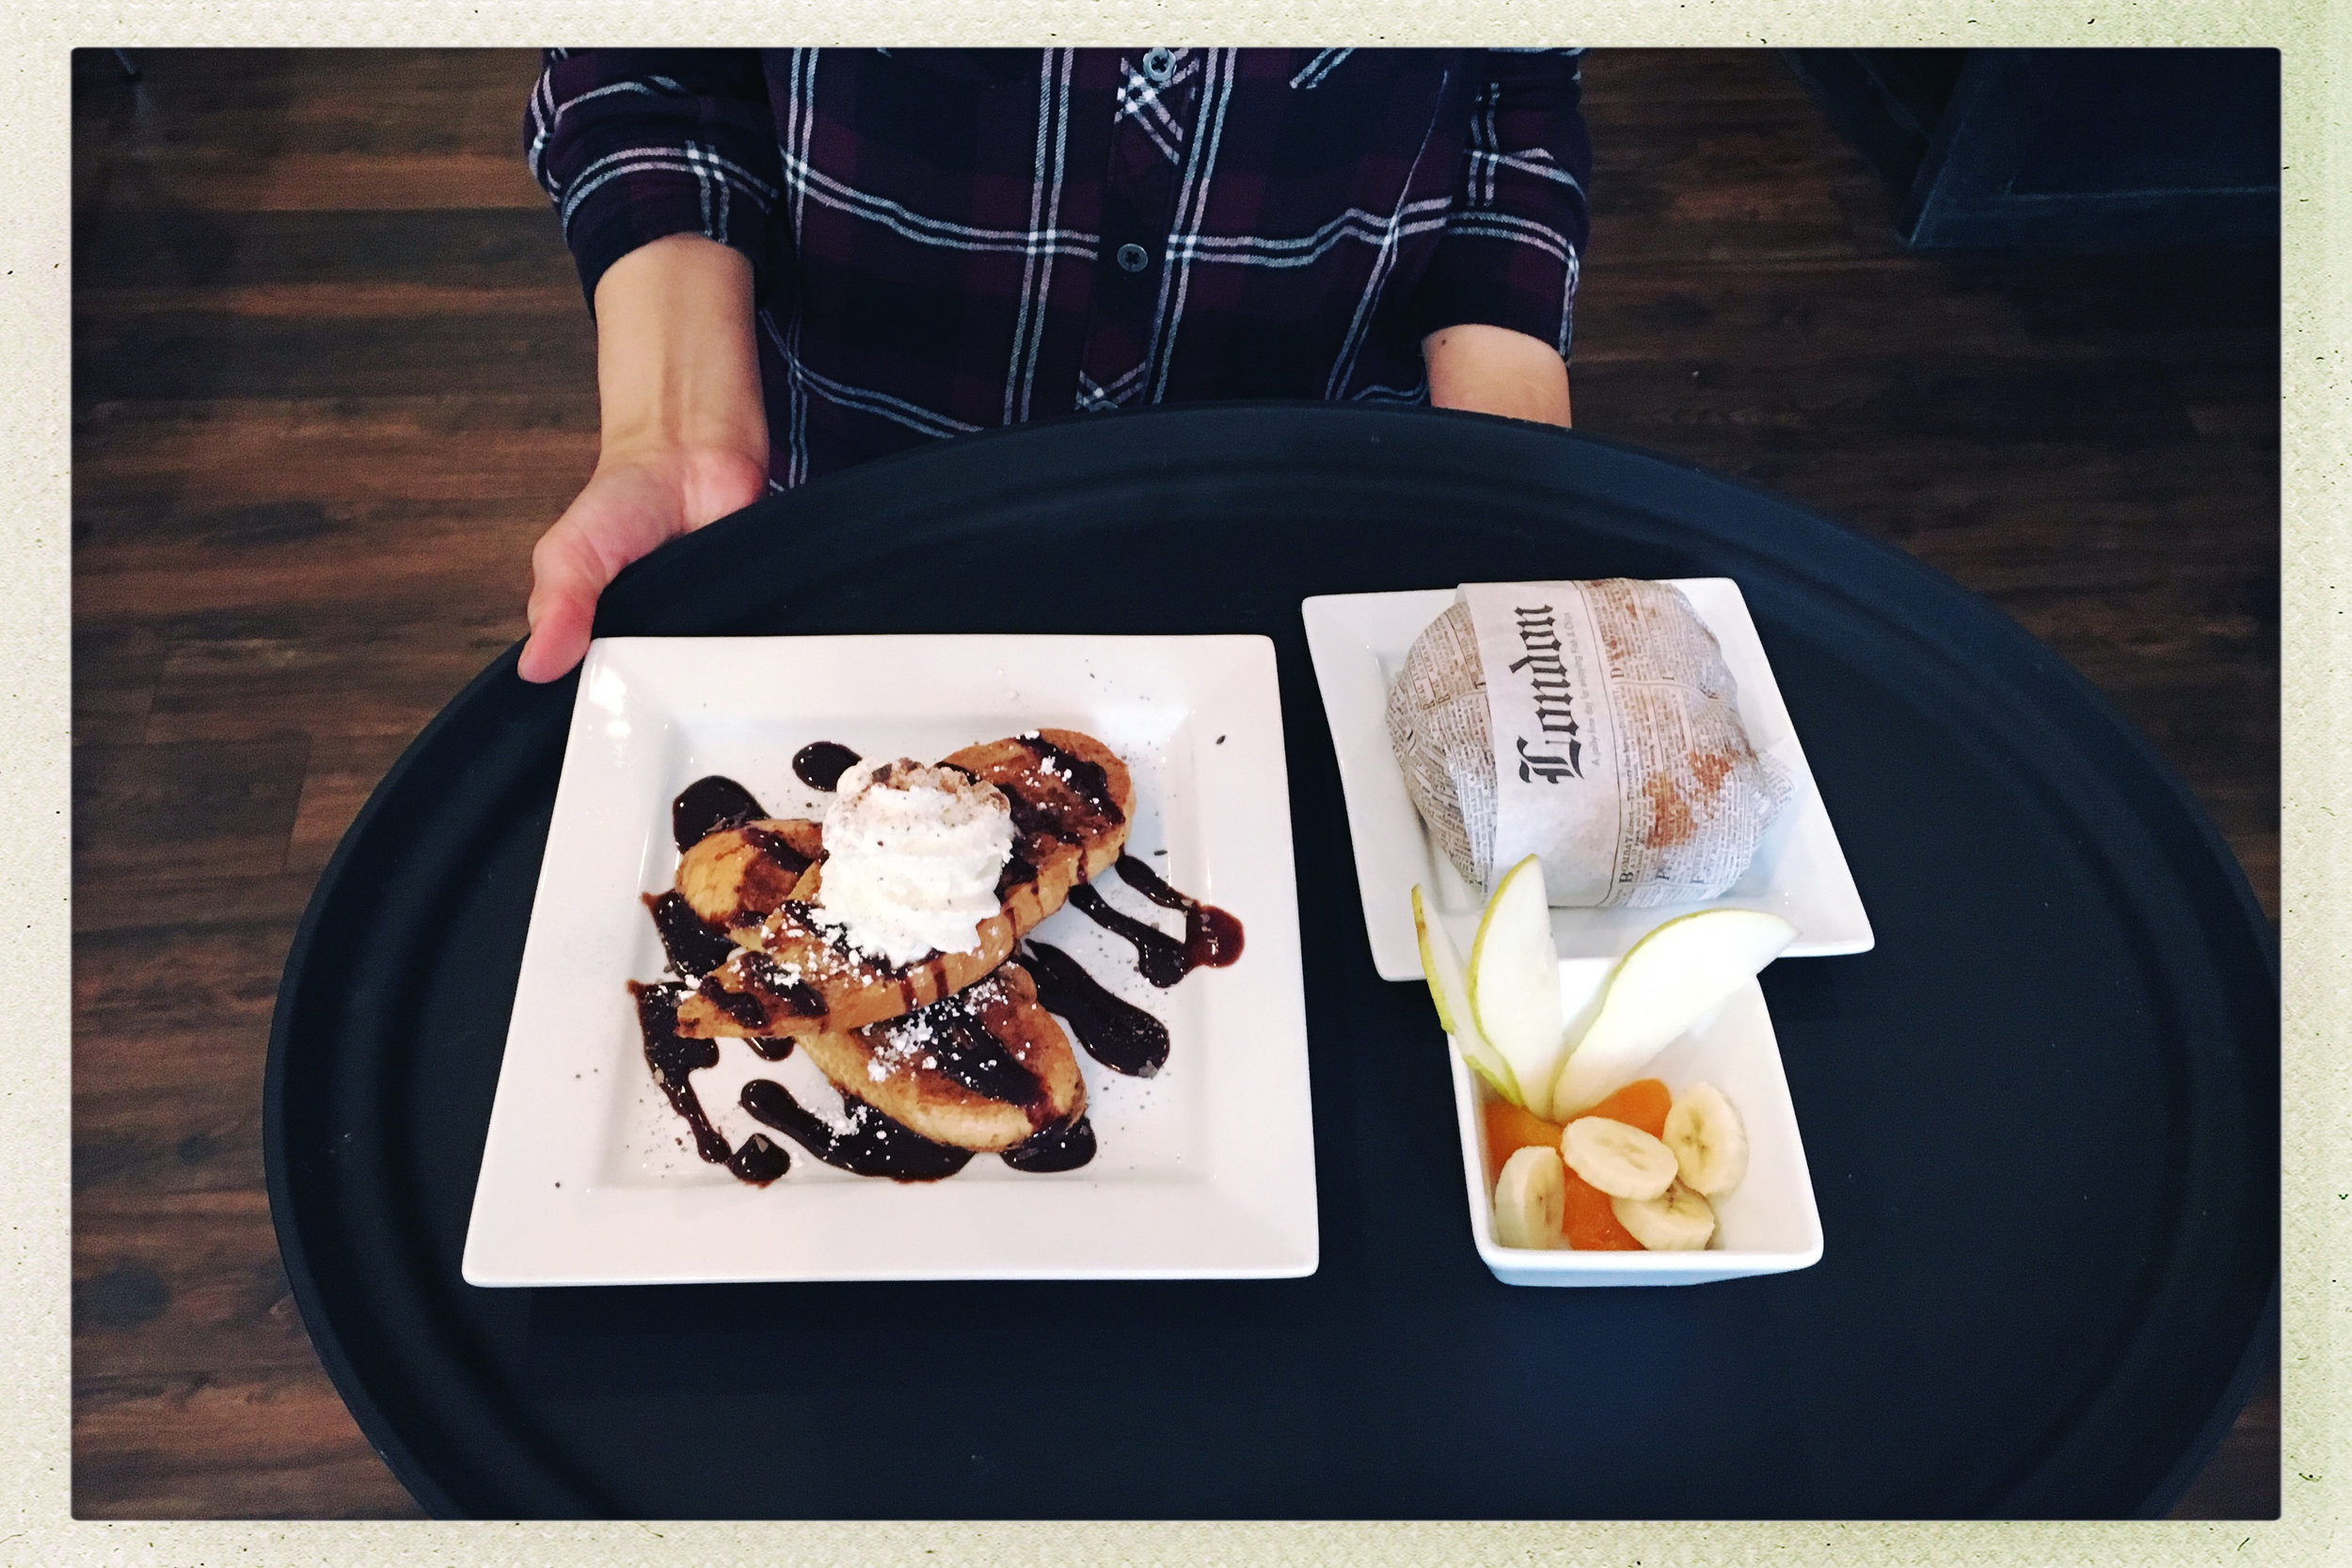 Chocolate Hazelnut French Toast, Crossiant Breakfast Sandwich and cup of fruit